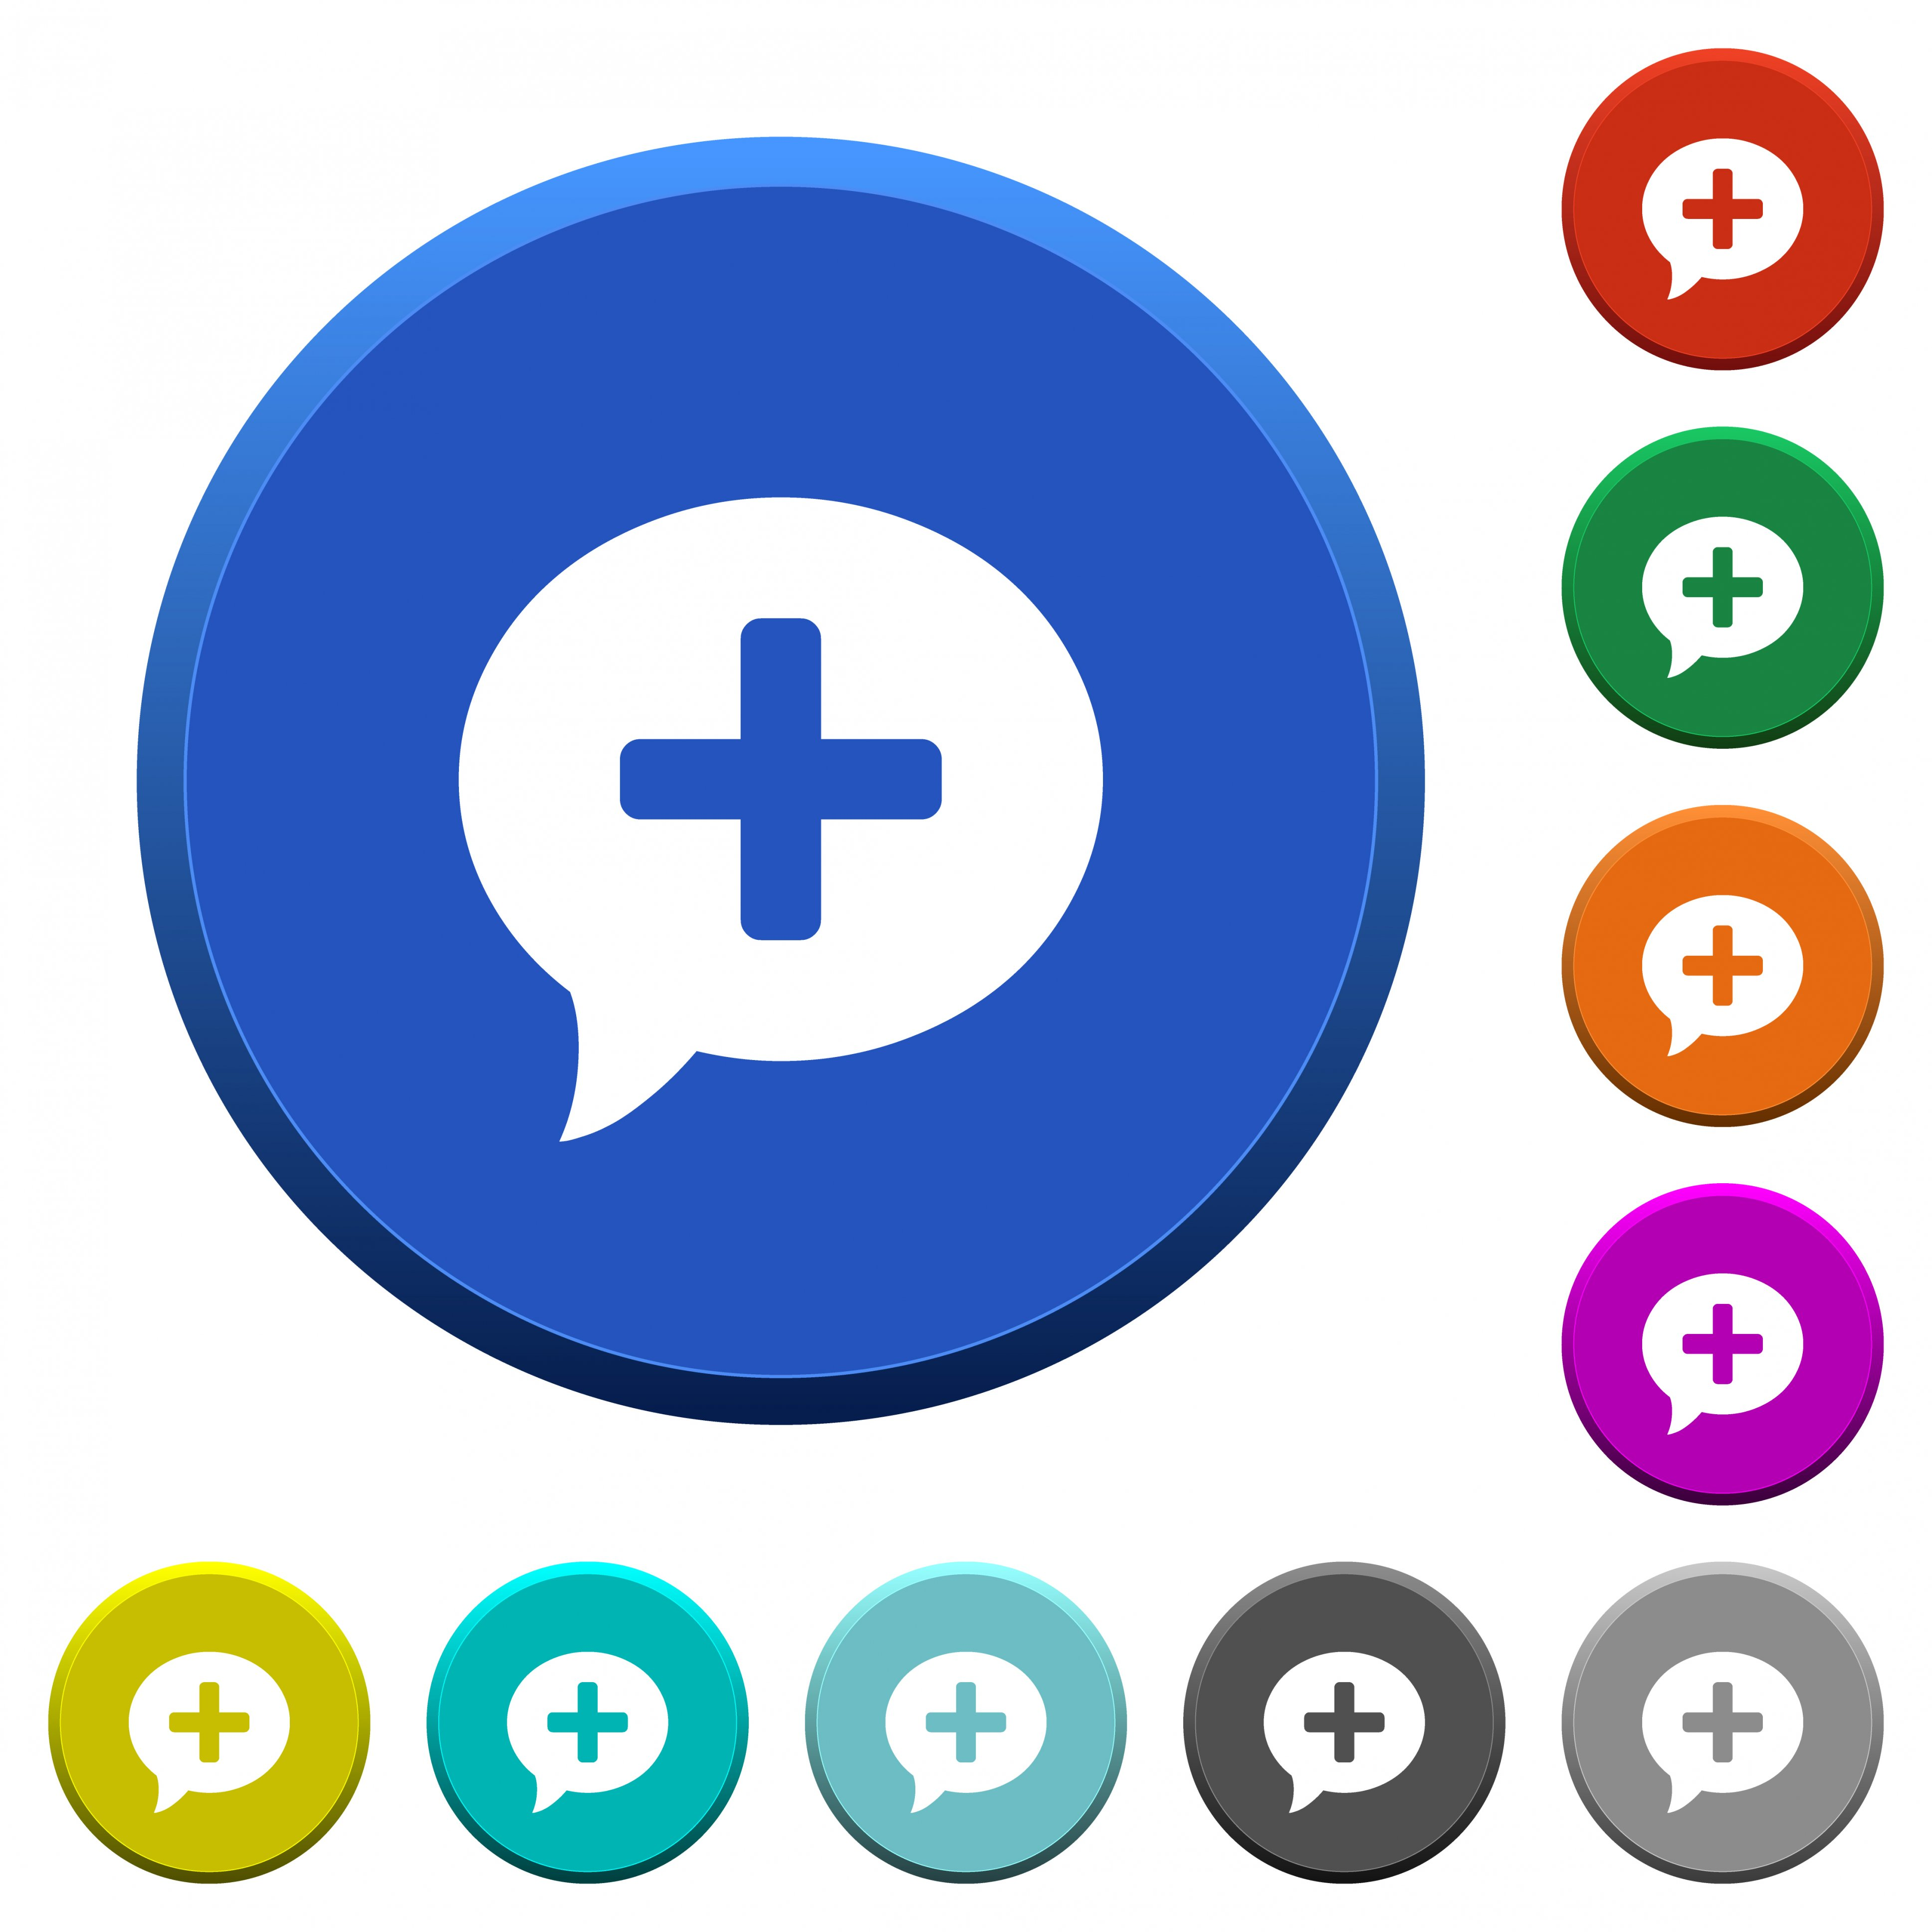 Add comment round color beveled buttons with smooth surfaces and flat white icons - Free image